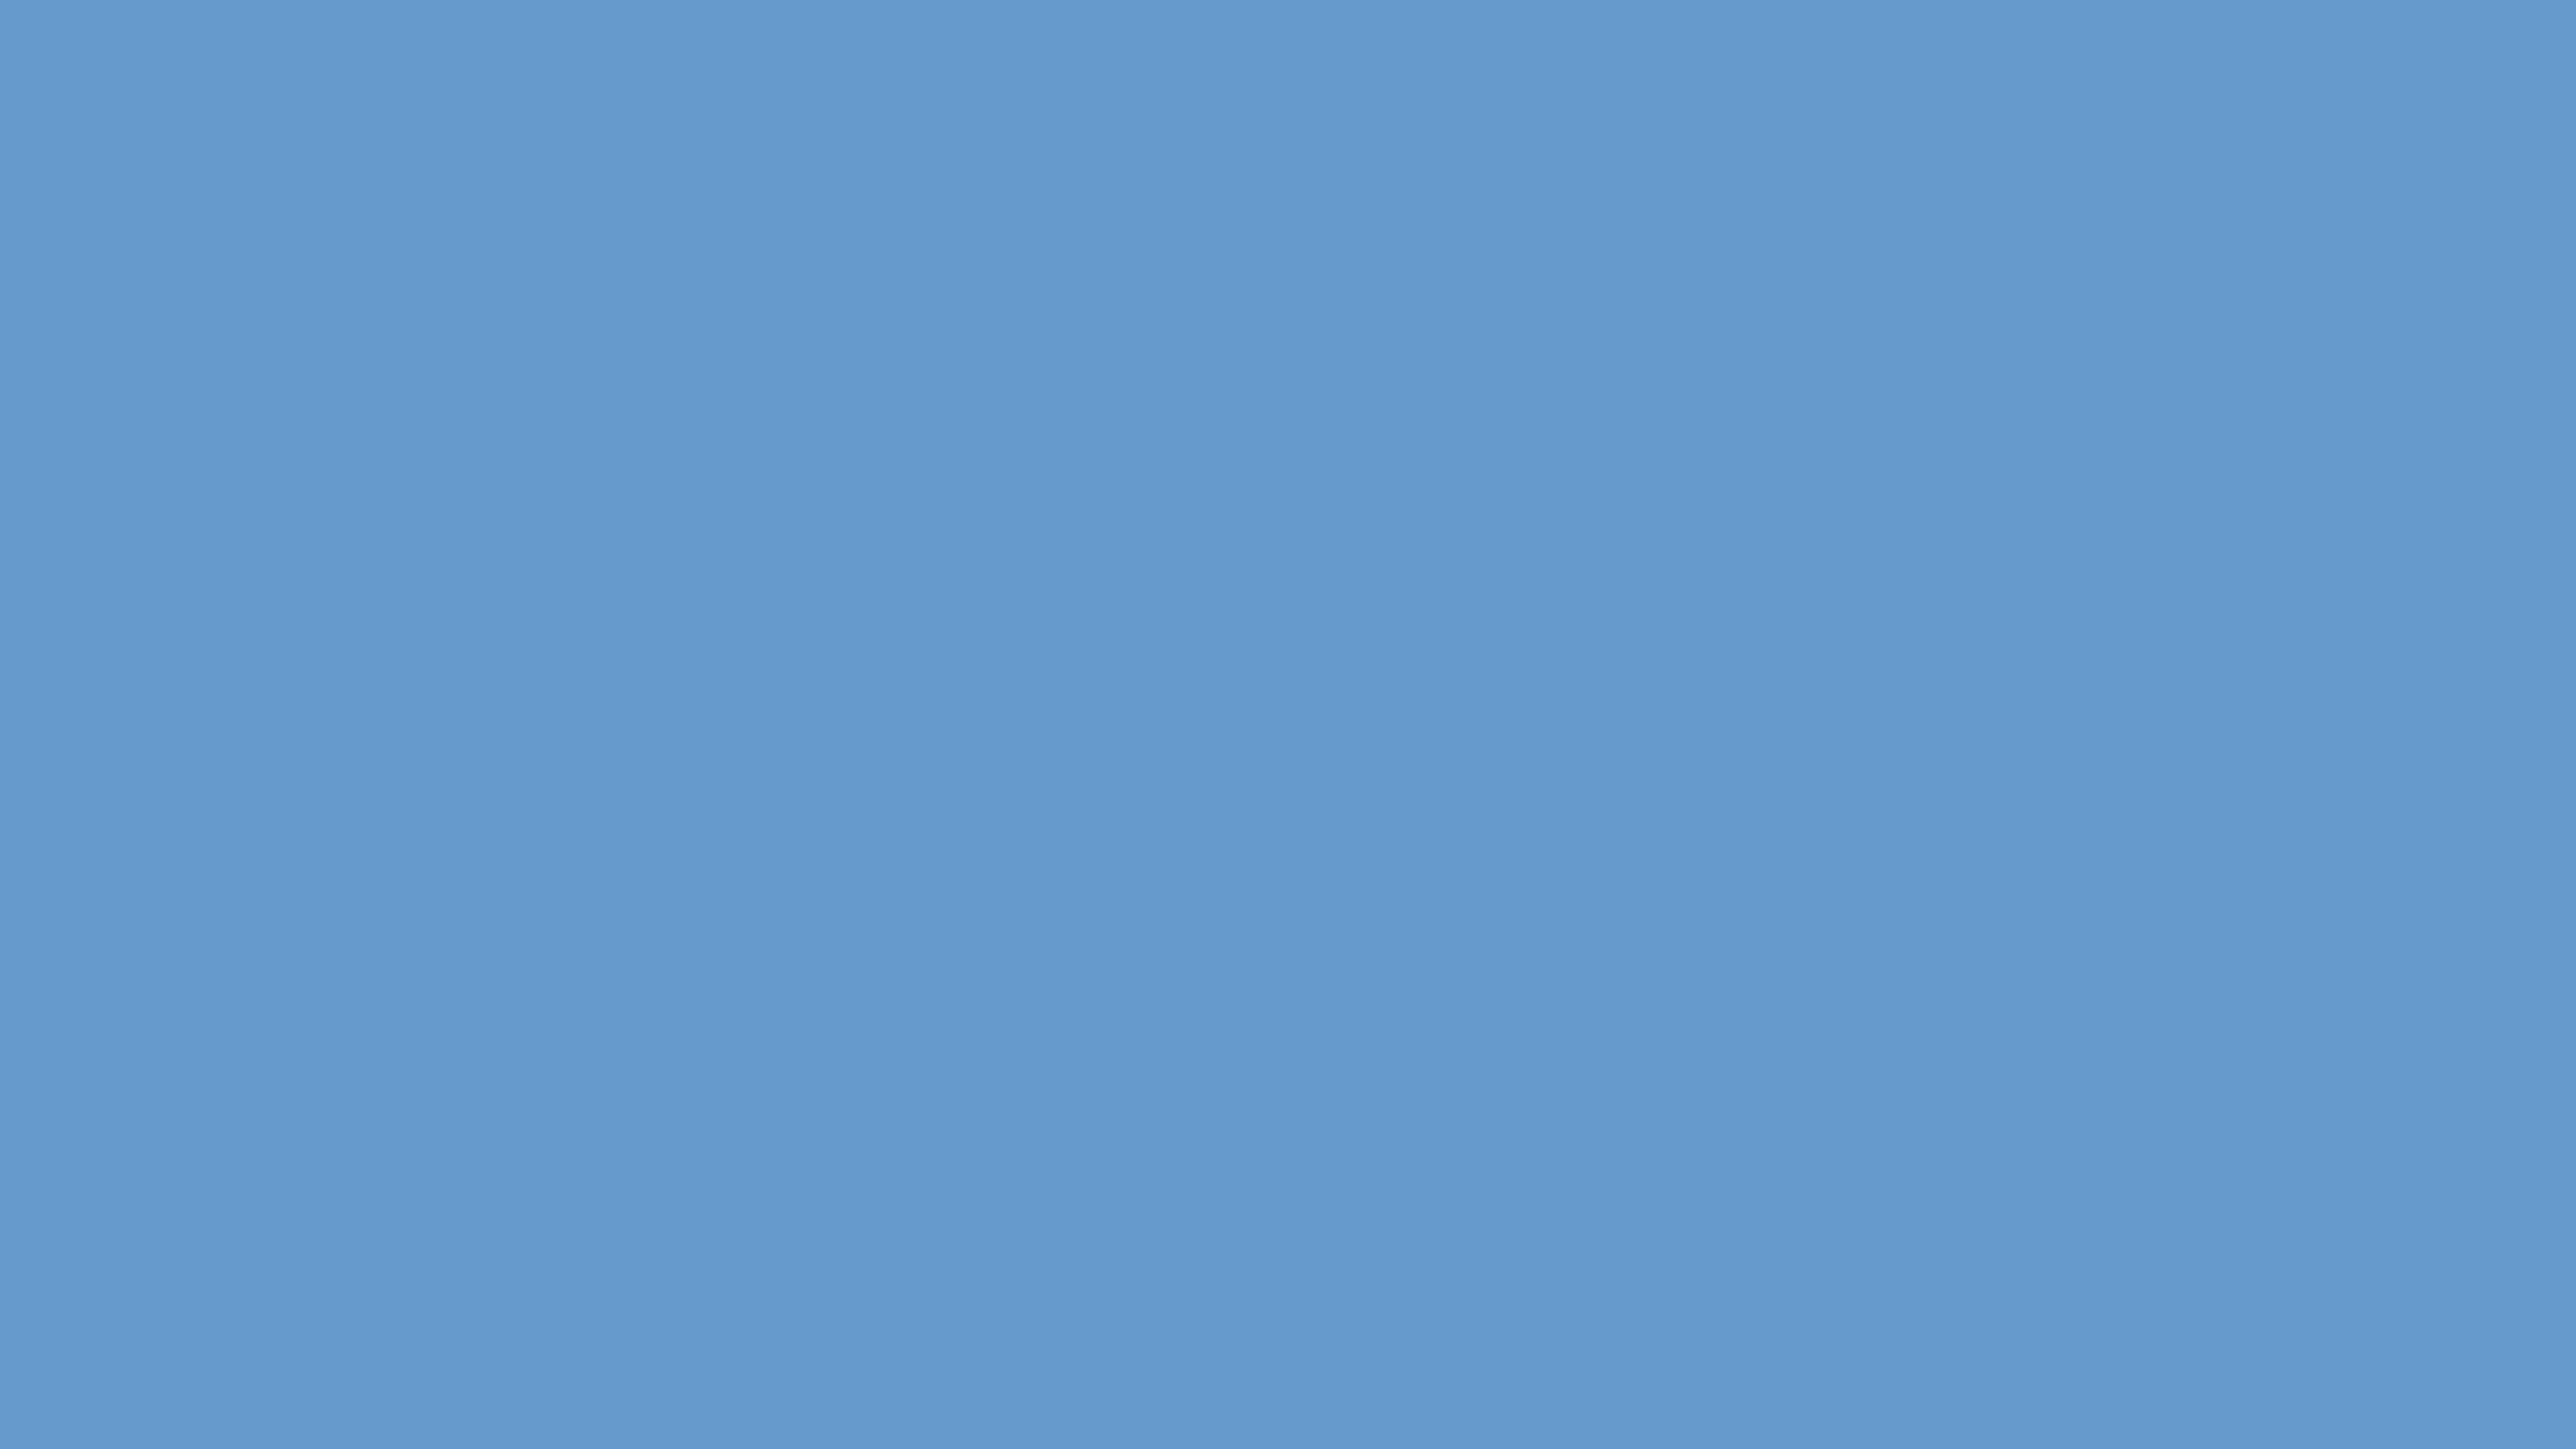 4096x2304 Blue-gray Solid Color Background